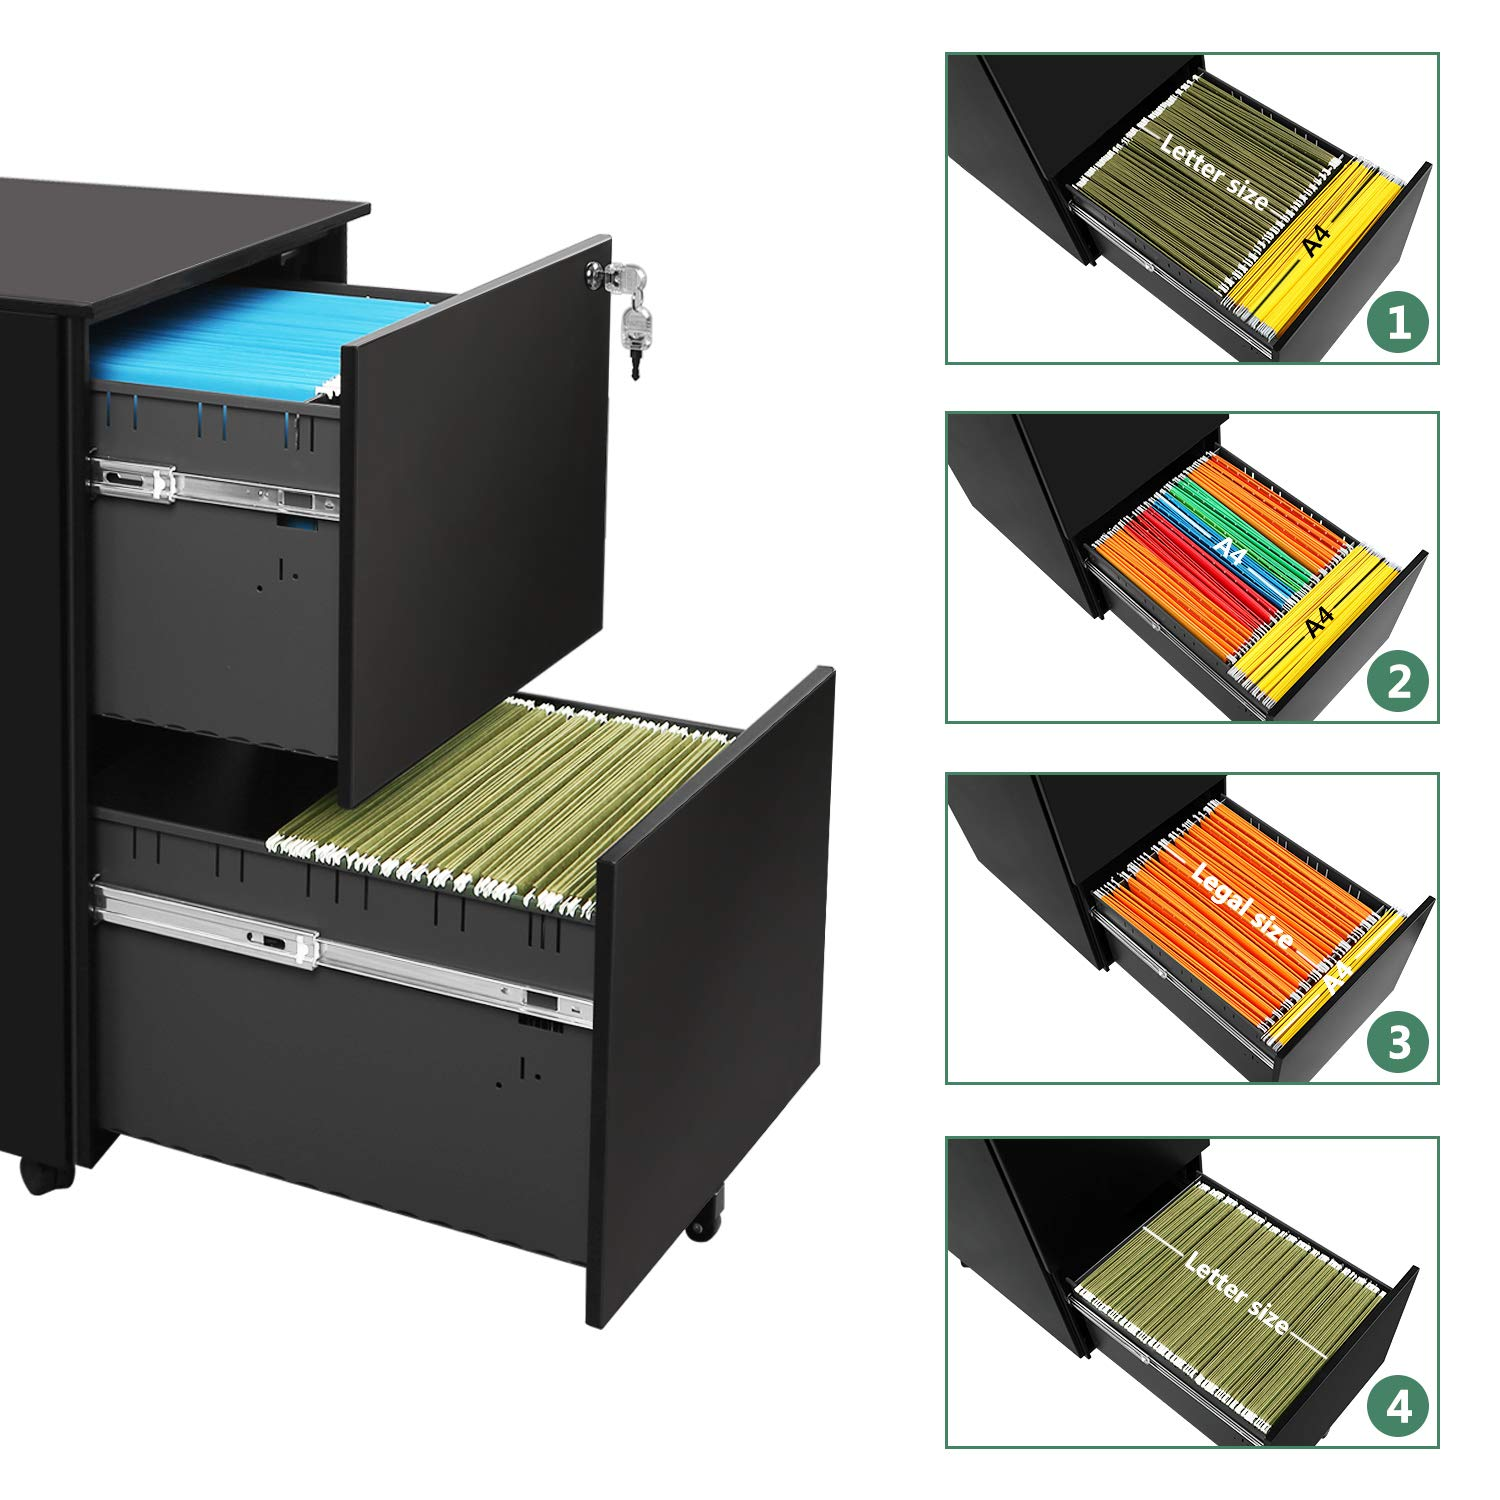 DEVAISE Locking File Cabinet, 2 Drawer Rolling Metal Filing Cabinet, Fully Assembled Except Wheels, Black by DEVAISE (Image #4)